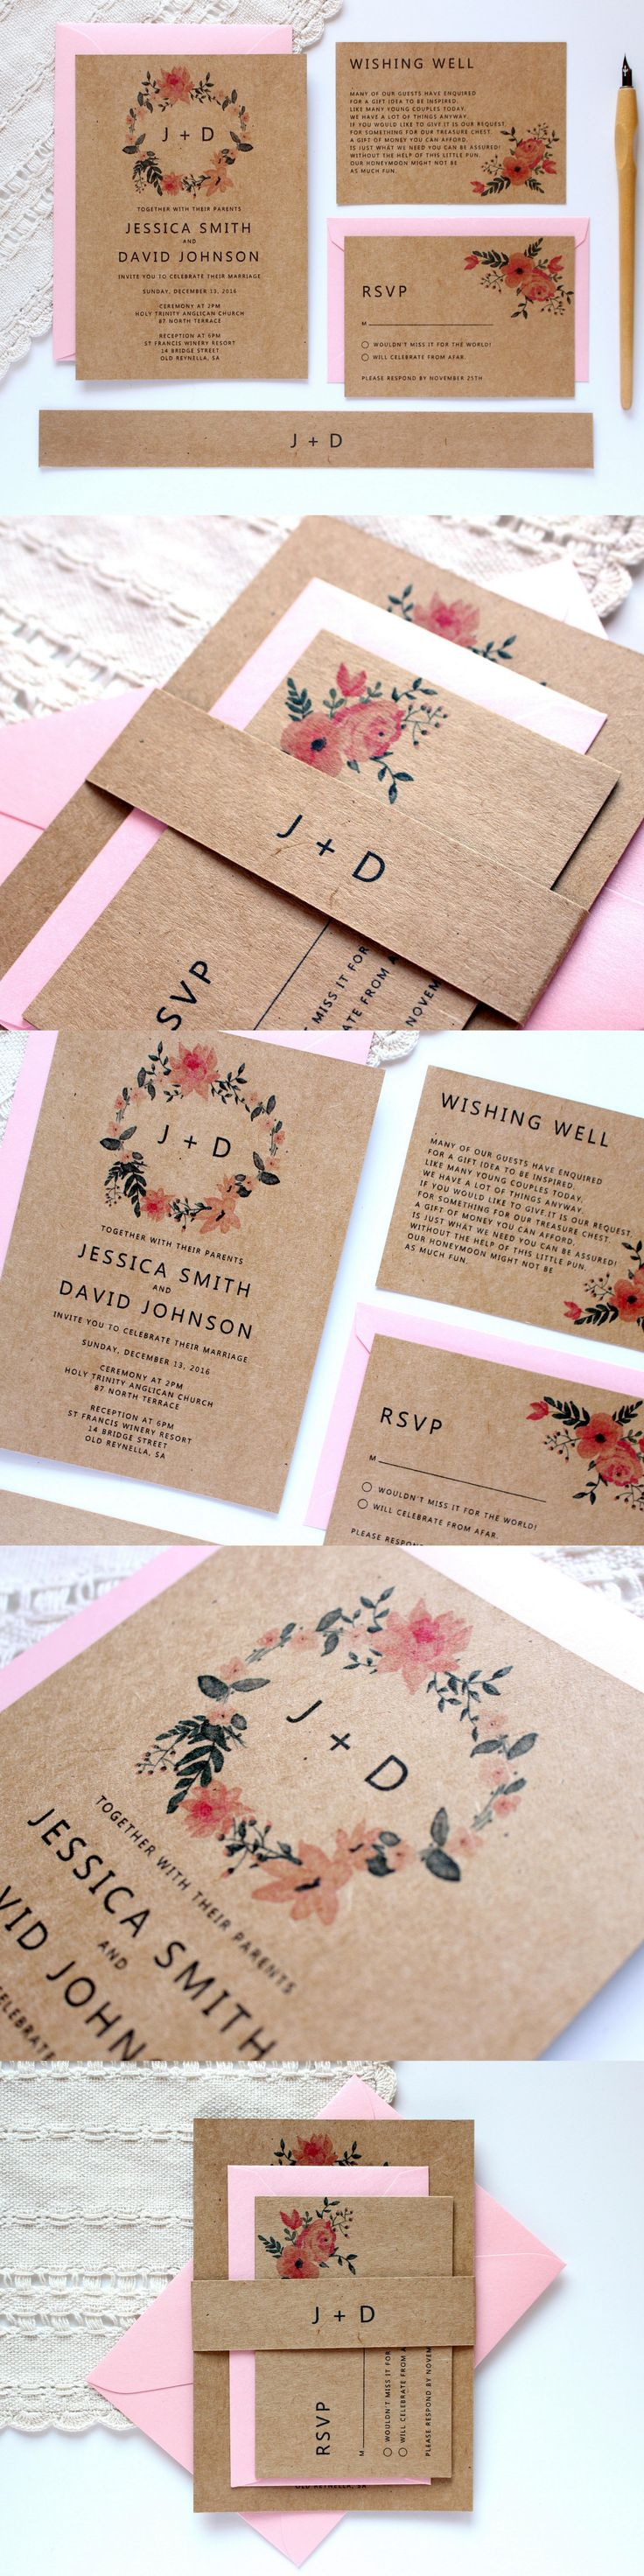 Kraft wedding invitation with pink floral wreath by Paper Bound Love